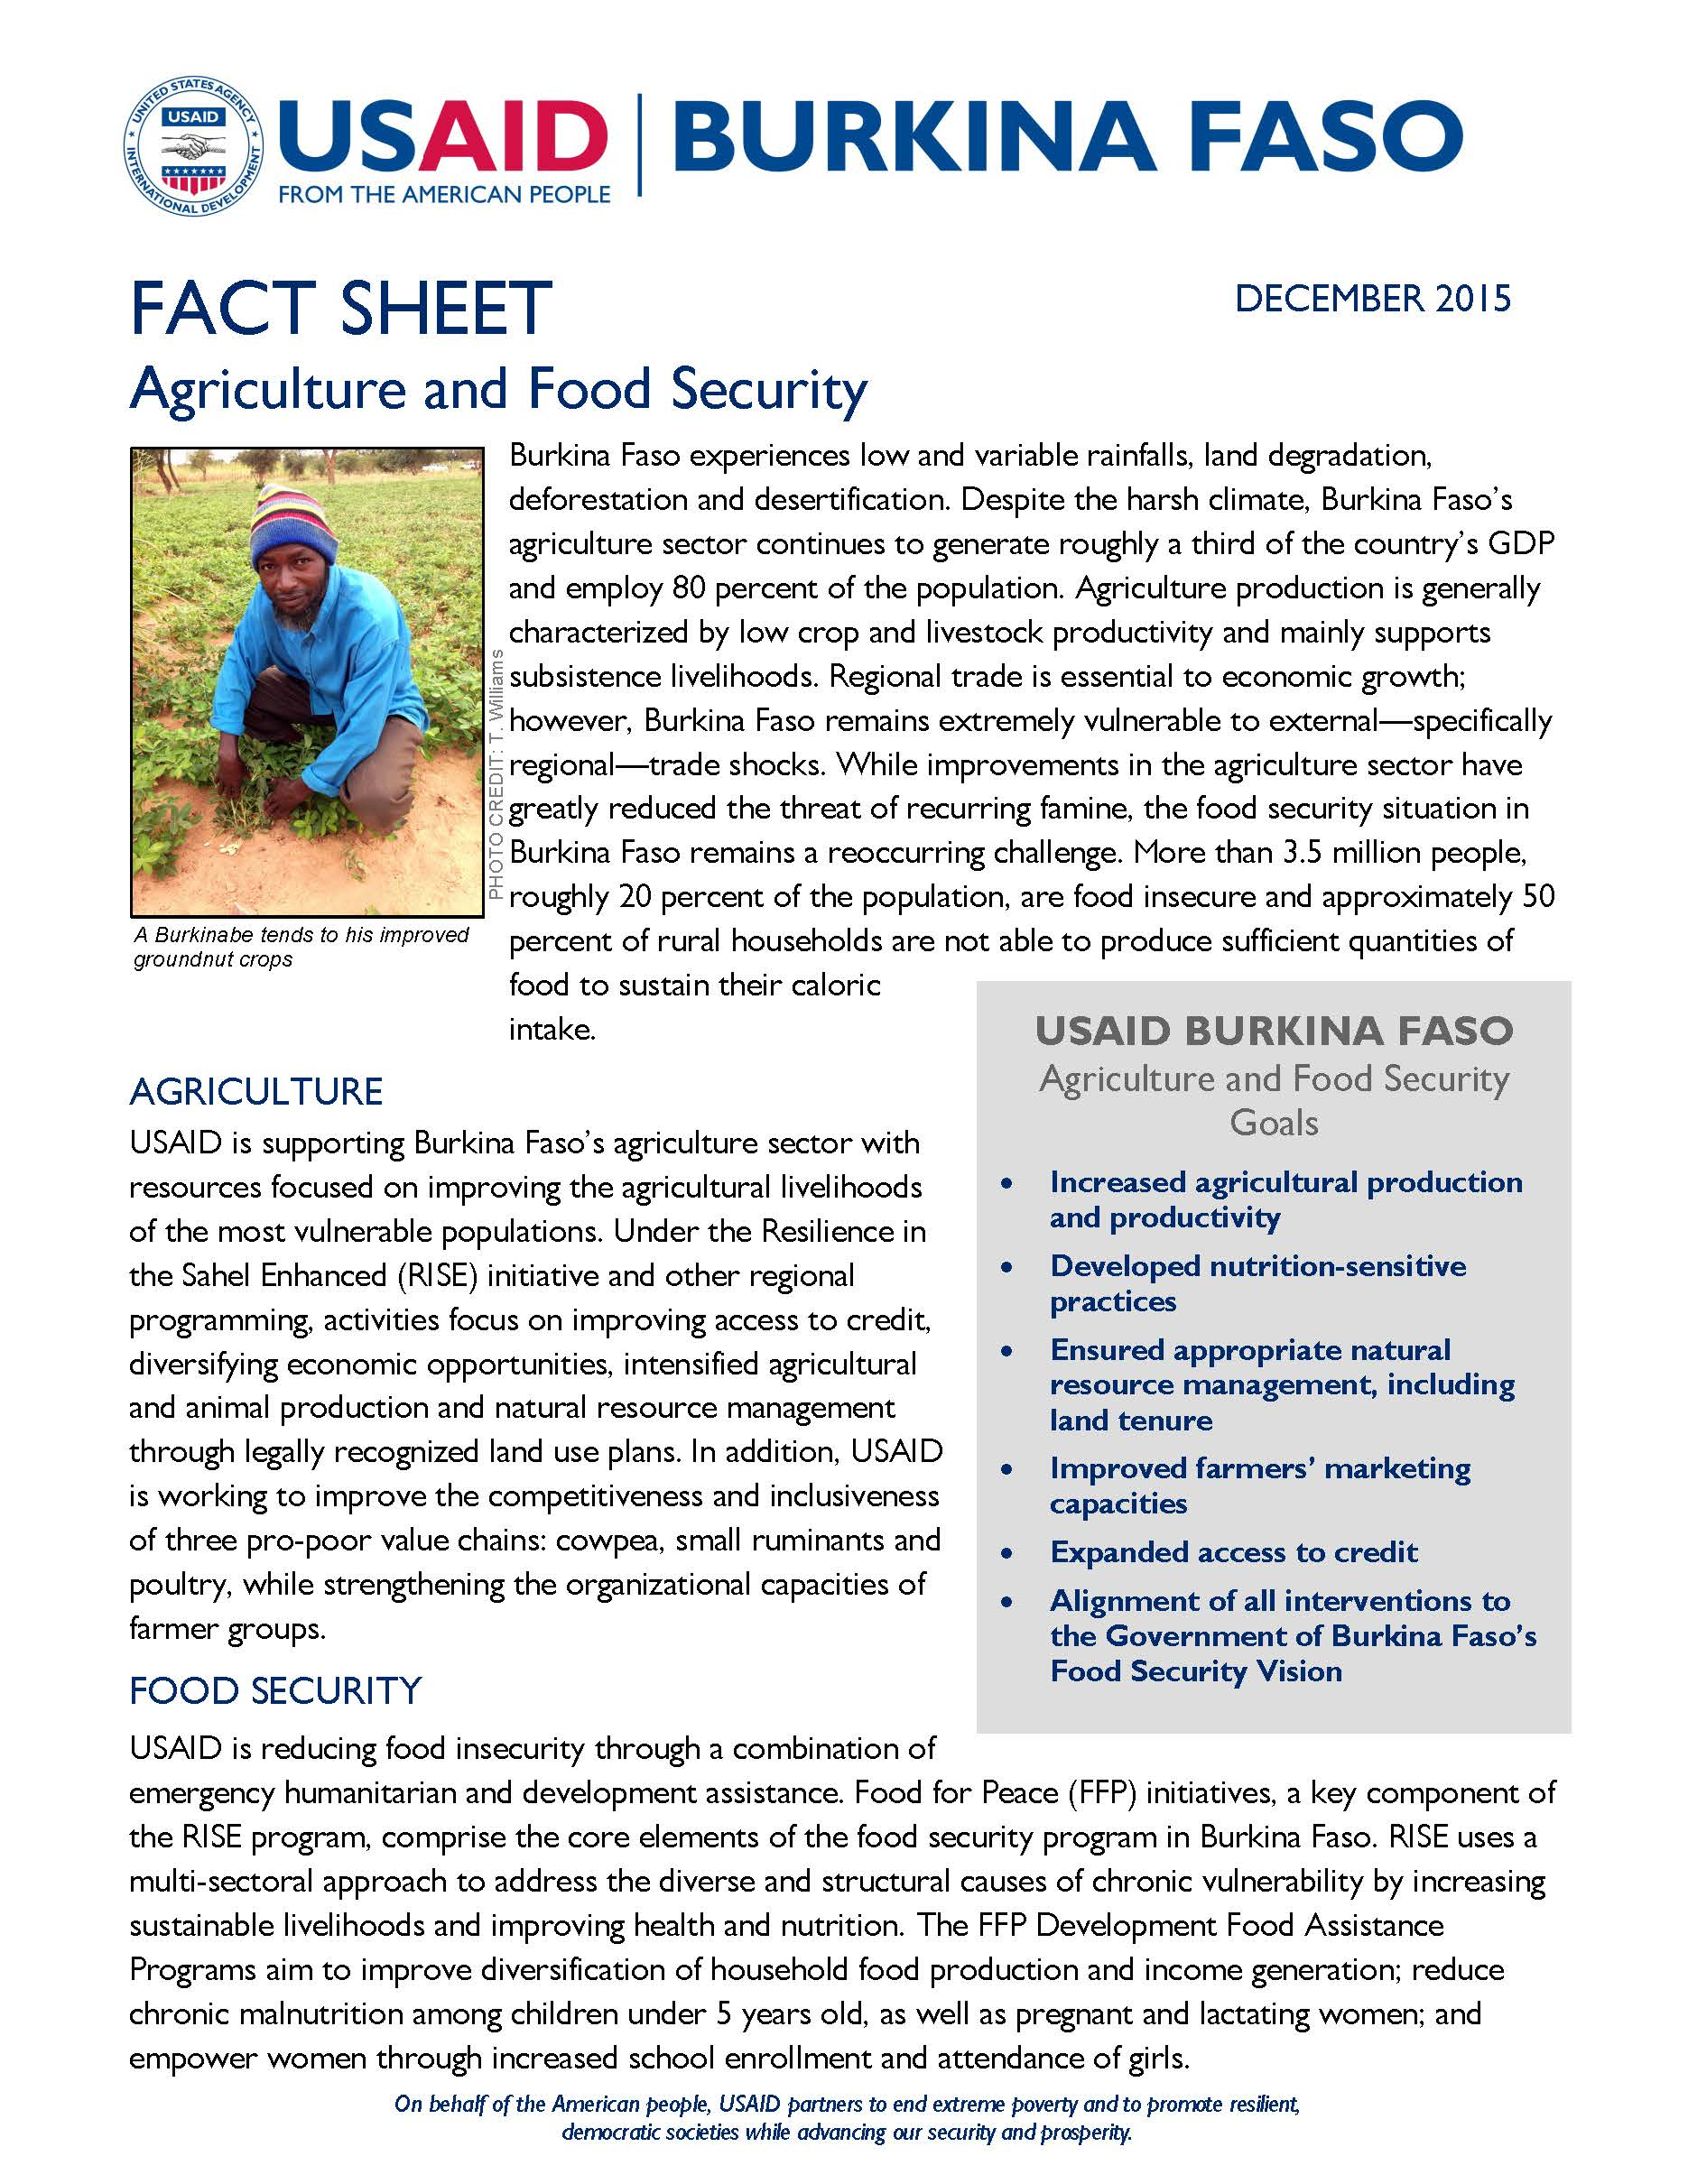 Burkina Faso Food Security Fact Sheet